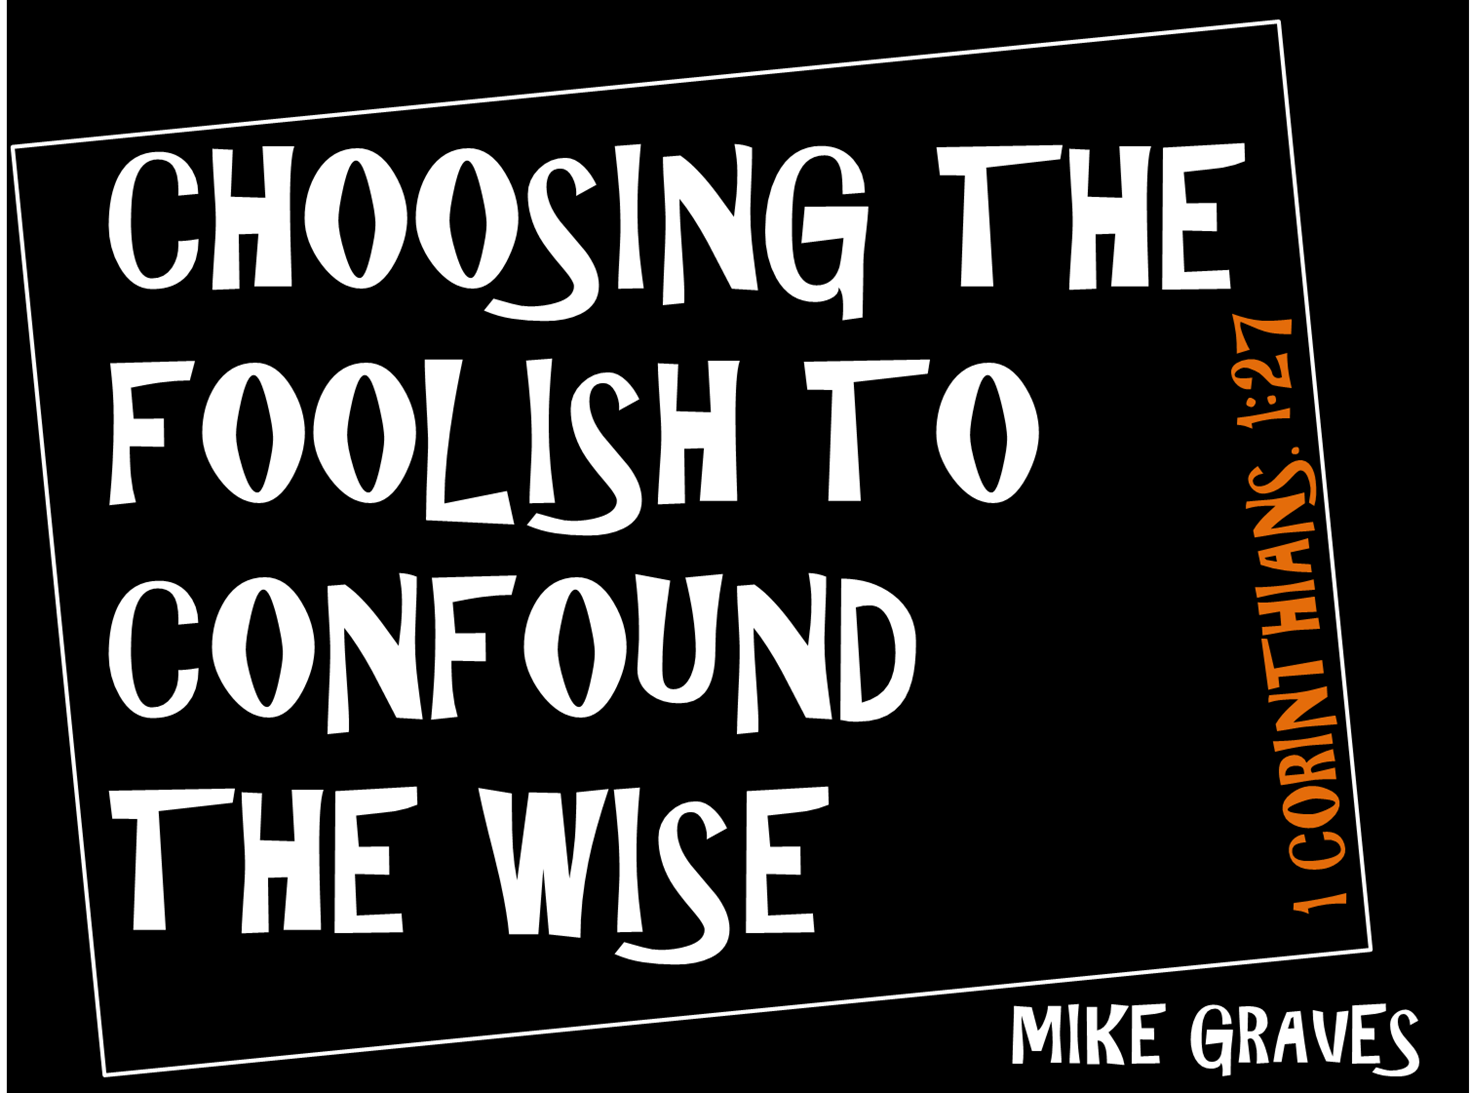 Choosing the Foolish to Confound the Wise